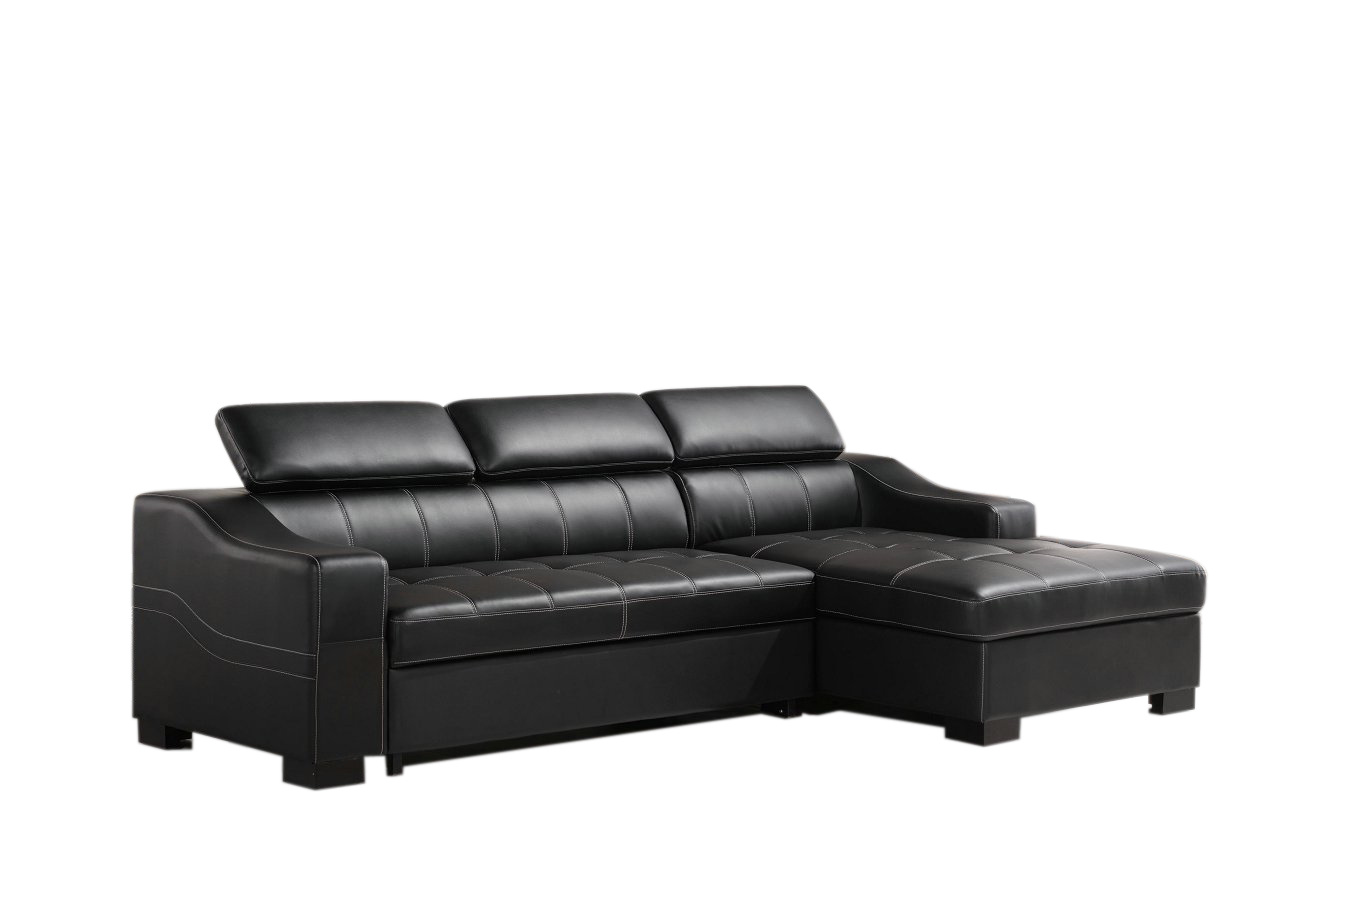 China Top Best Selling Furniture Styles In Australia